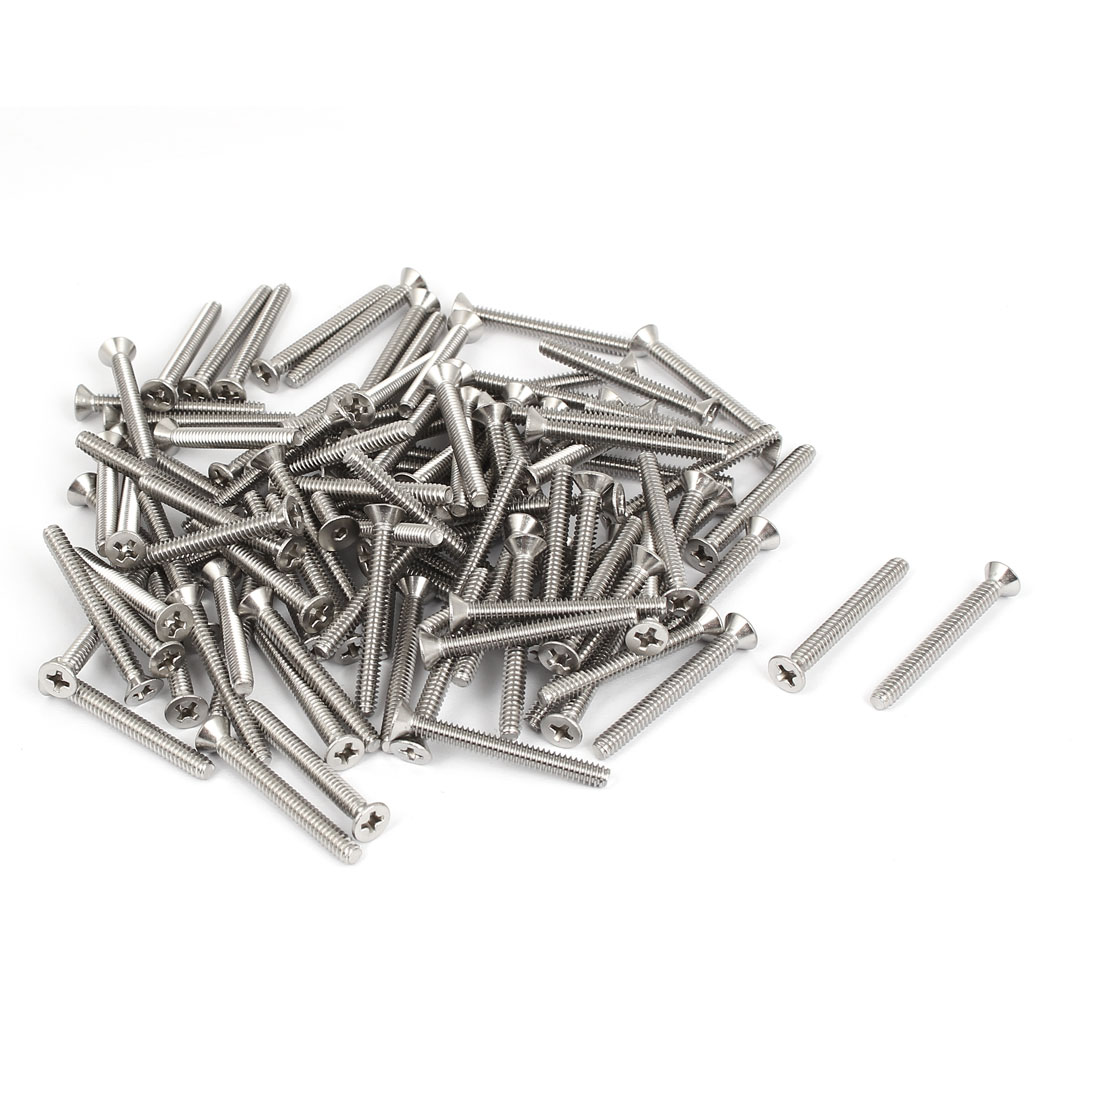 "6#-32x1-1/4"" 304 Stainless Steel Phillips Flat Countersunk Head Screws 100pcs"